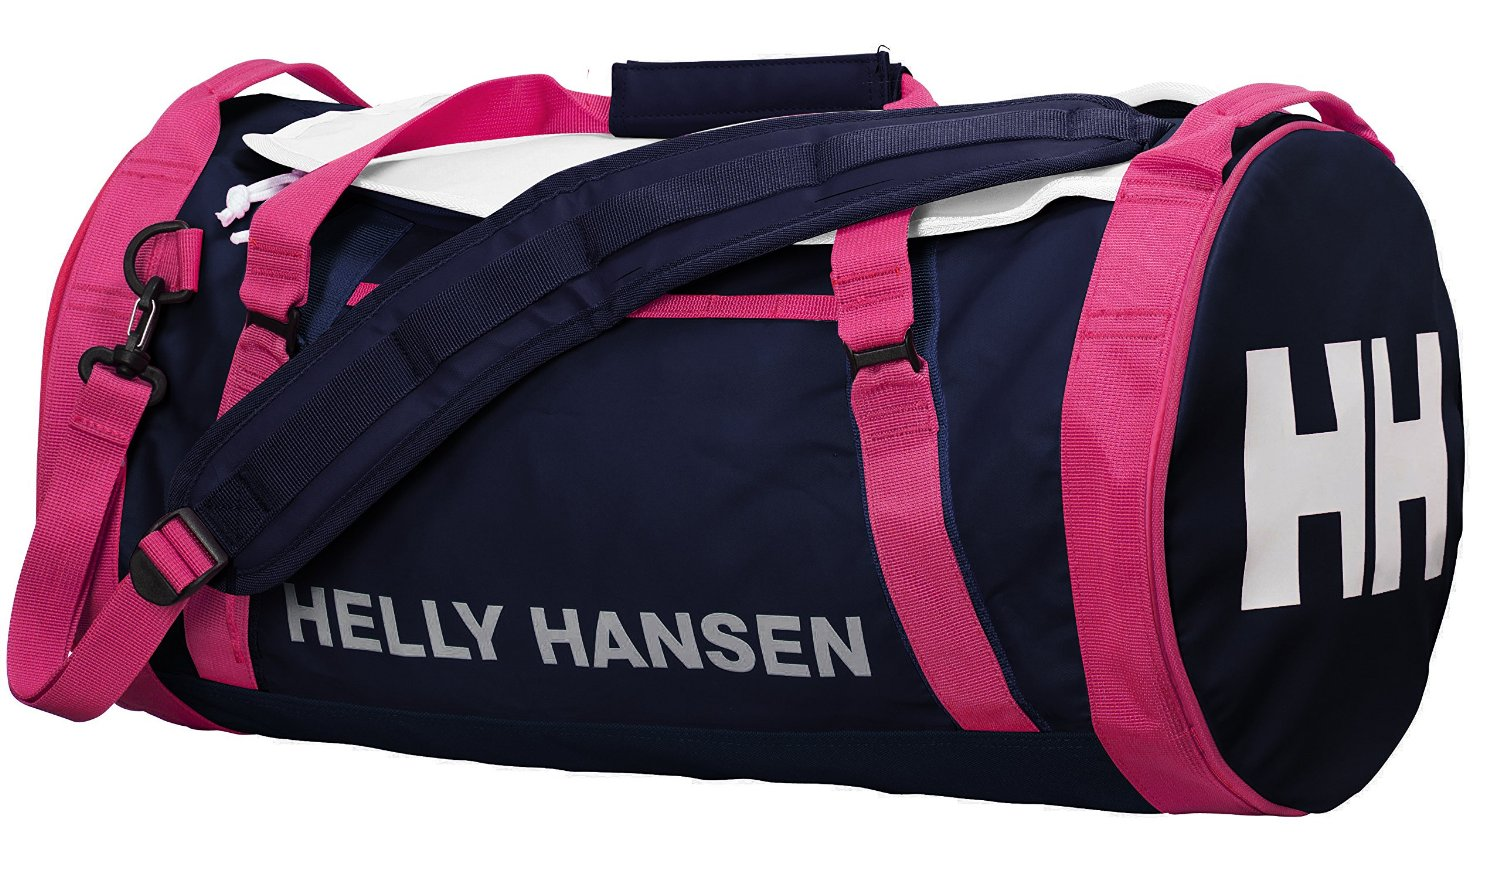 708cd10d4f Buy Helly Hansen HH 90-Liter Travel Duffel Bag in Cheap Price on ...